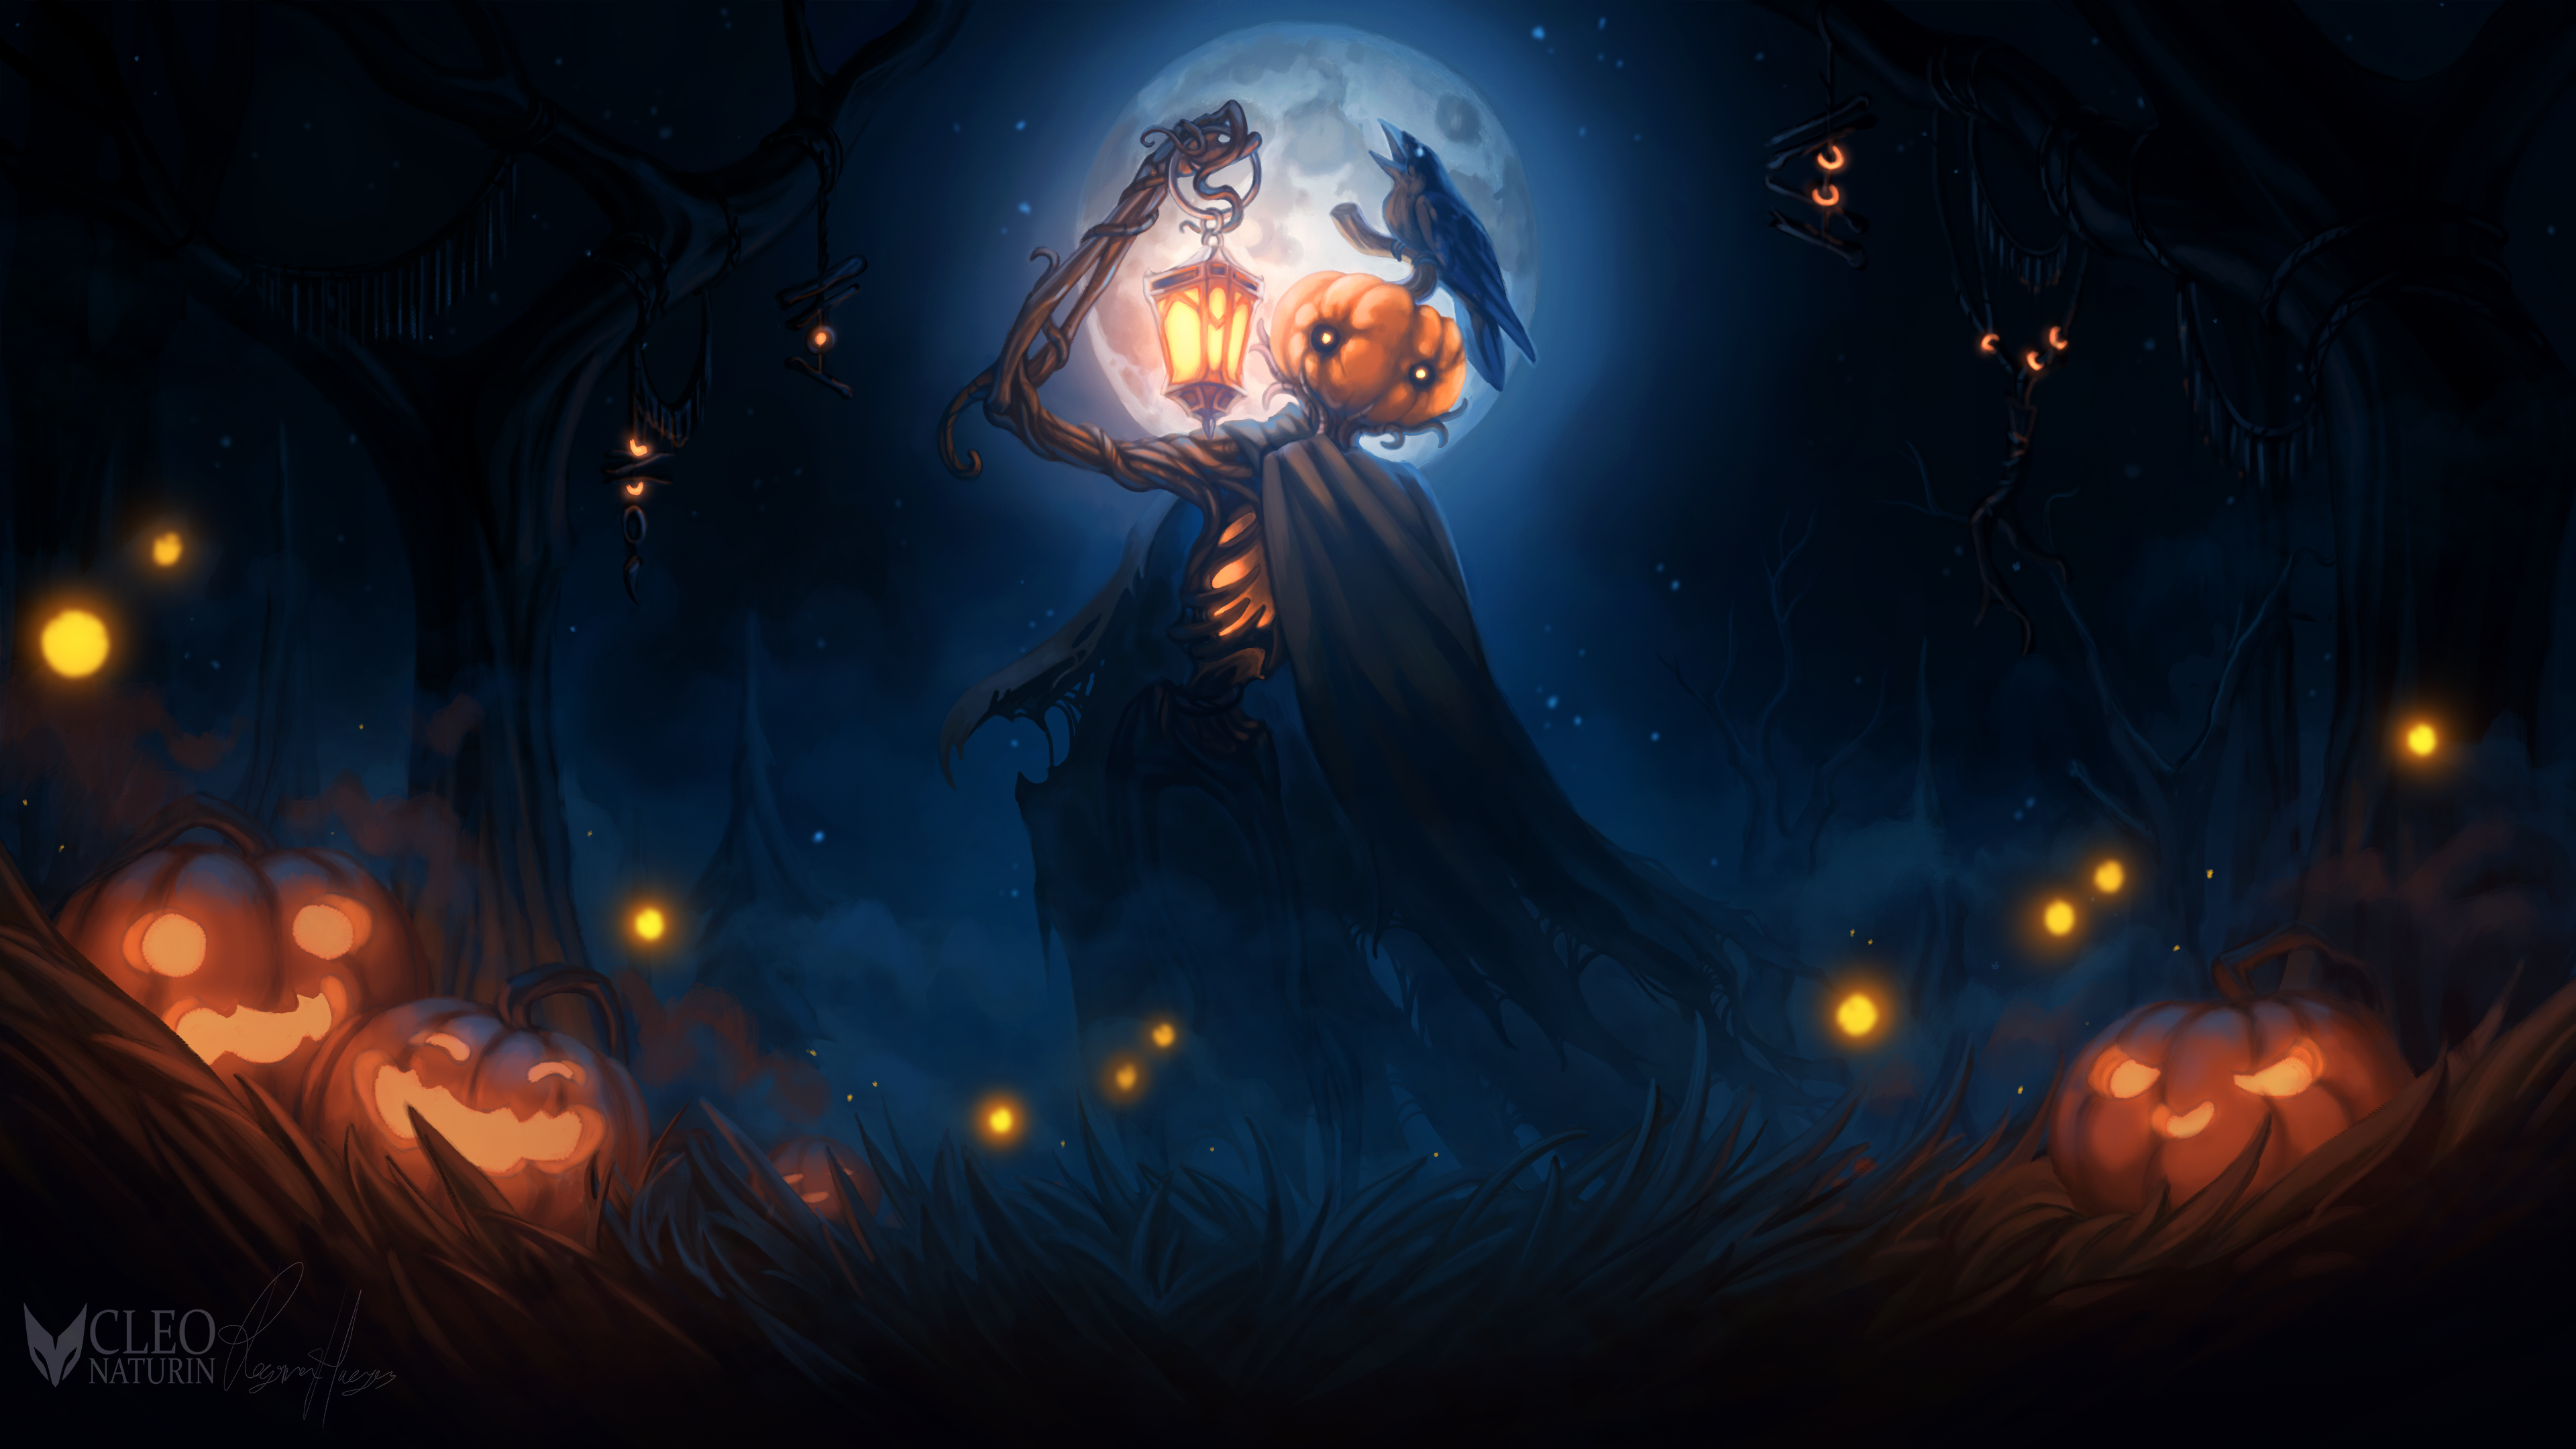 General 3840x2160 digital digital art artwork illustration drawing digital painting Halloween holiday spooky ambient atmosphere lights pumpkin Jack O' Lantern fantasy art dark dusk night lantern grass forest trees night sky Moon moonlight mist character design  fictional fictional character original characters crow